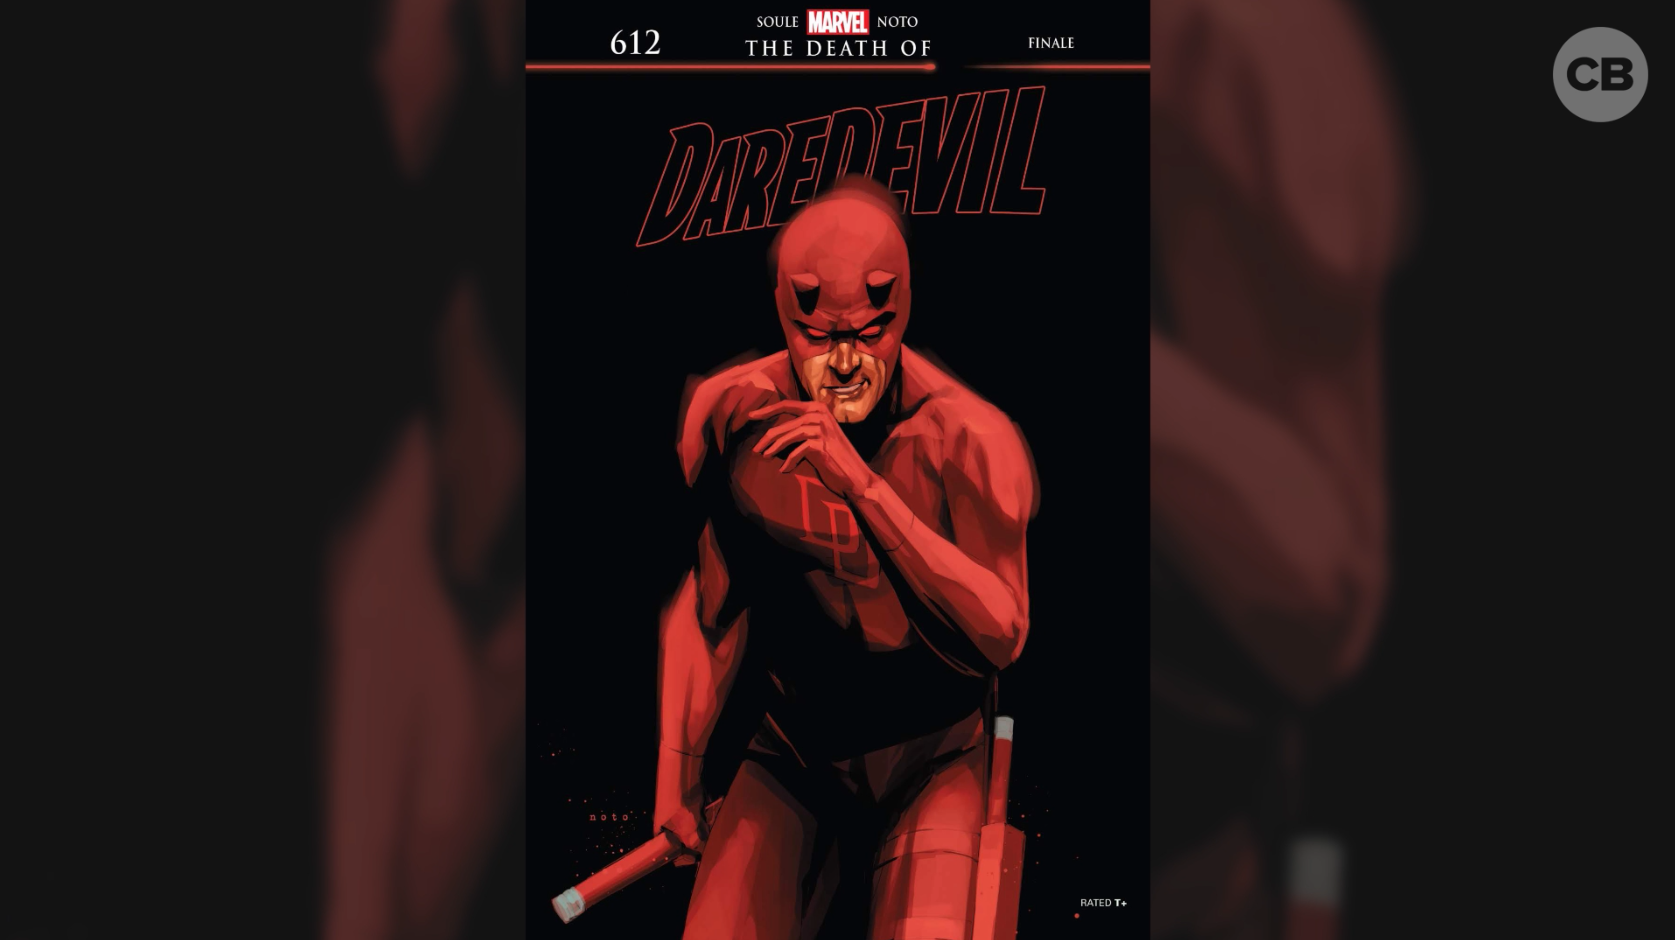 This Week in Comics: Daredevil #612 screen capture